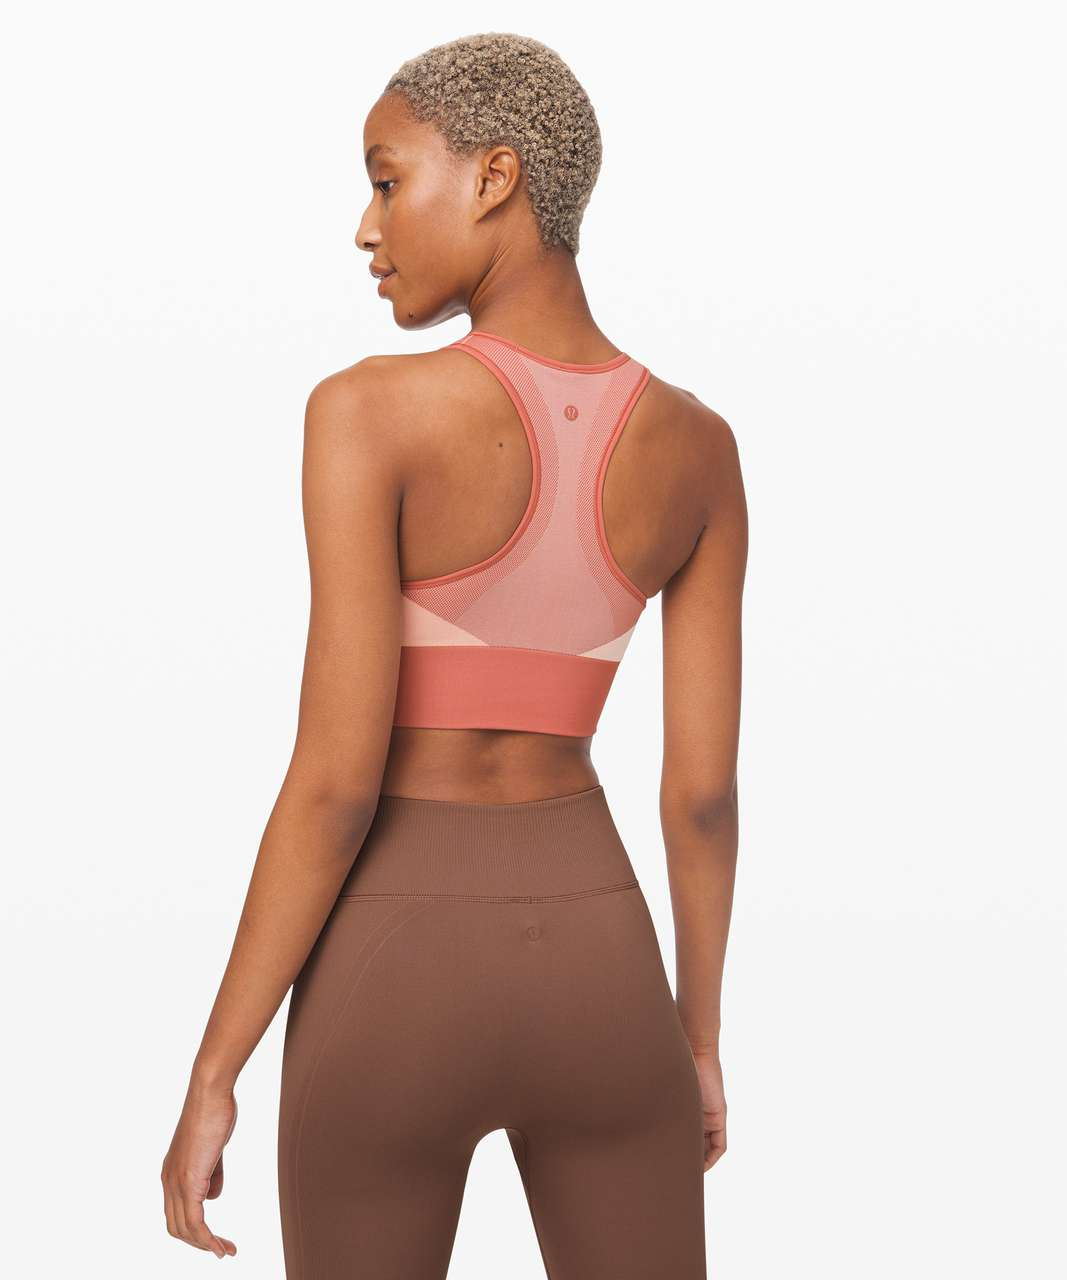 Lululemon Ebb to Train Bra *Abstract - Copper Clay / Angel Wing